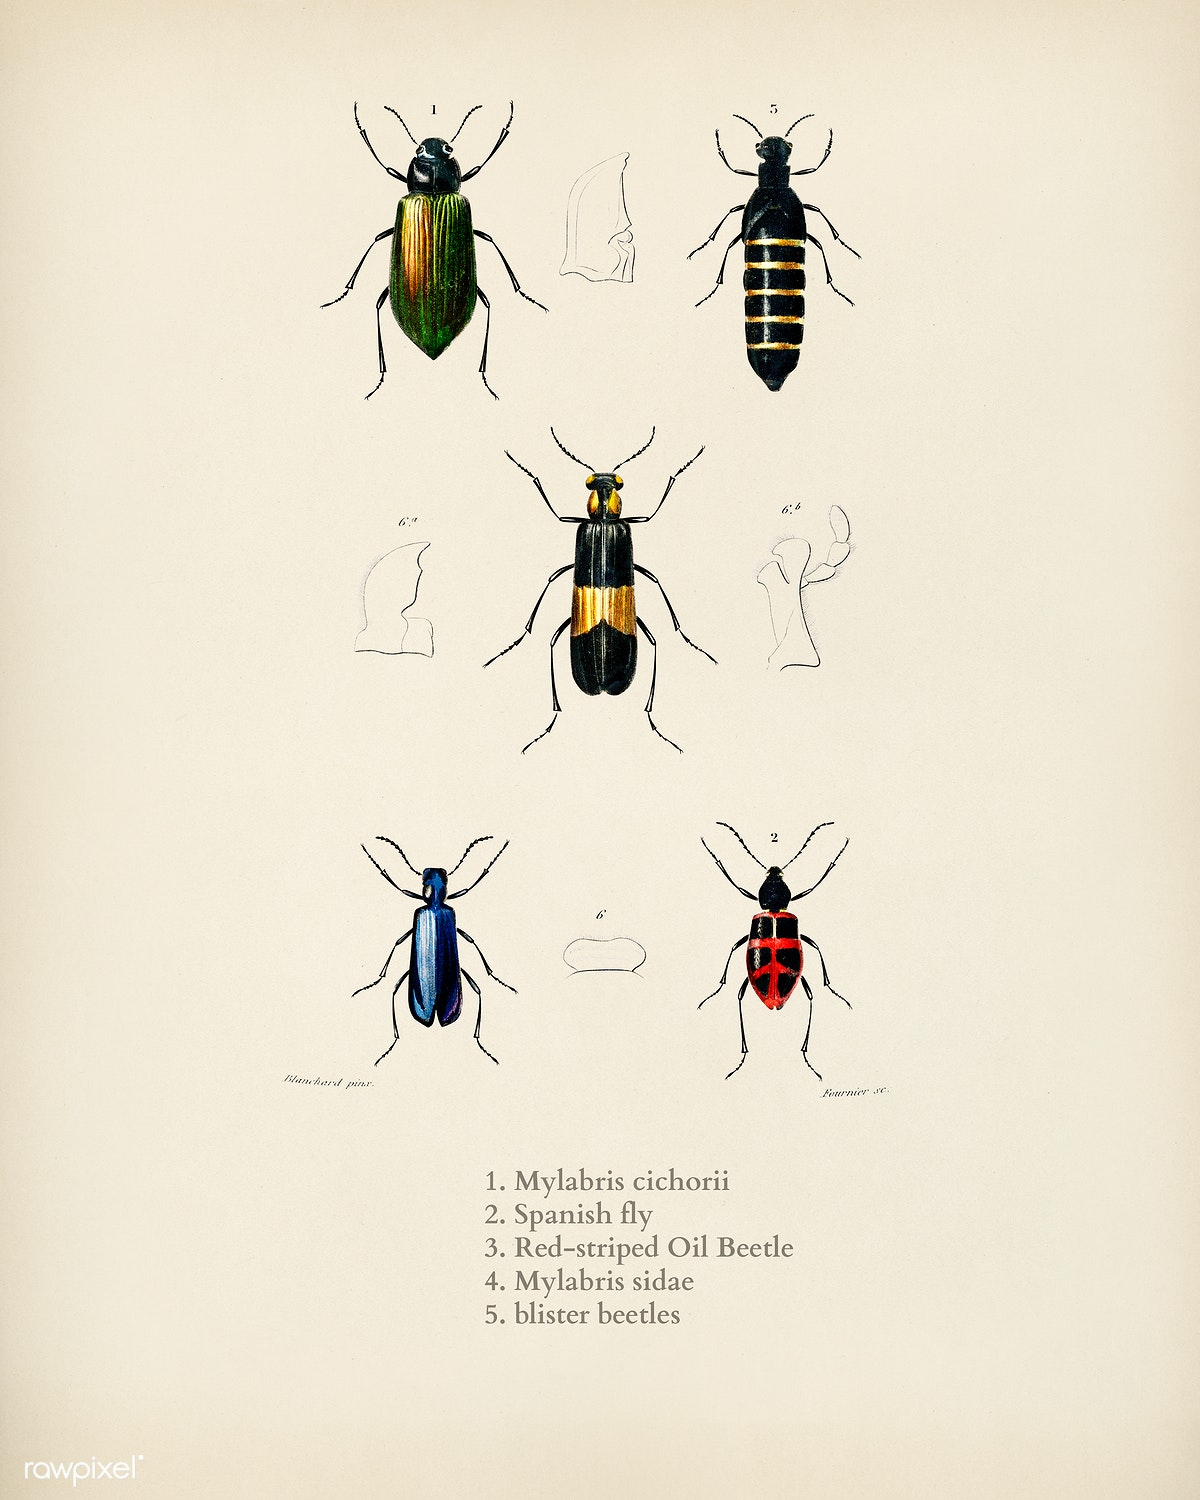 Download premium illustration of Different types of beetles illustrated by